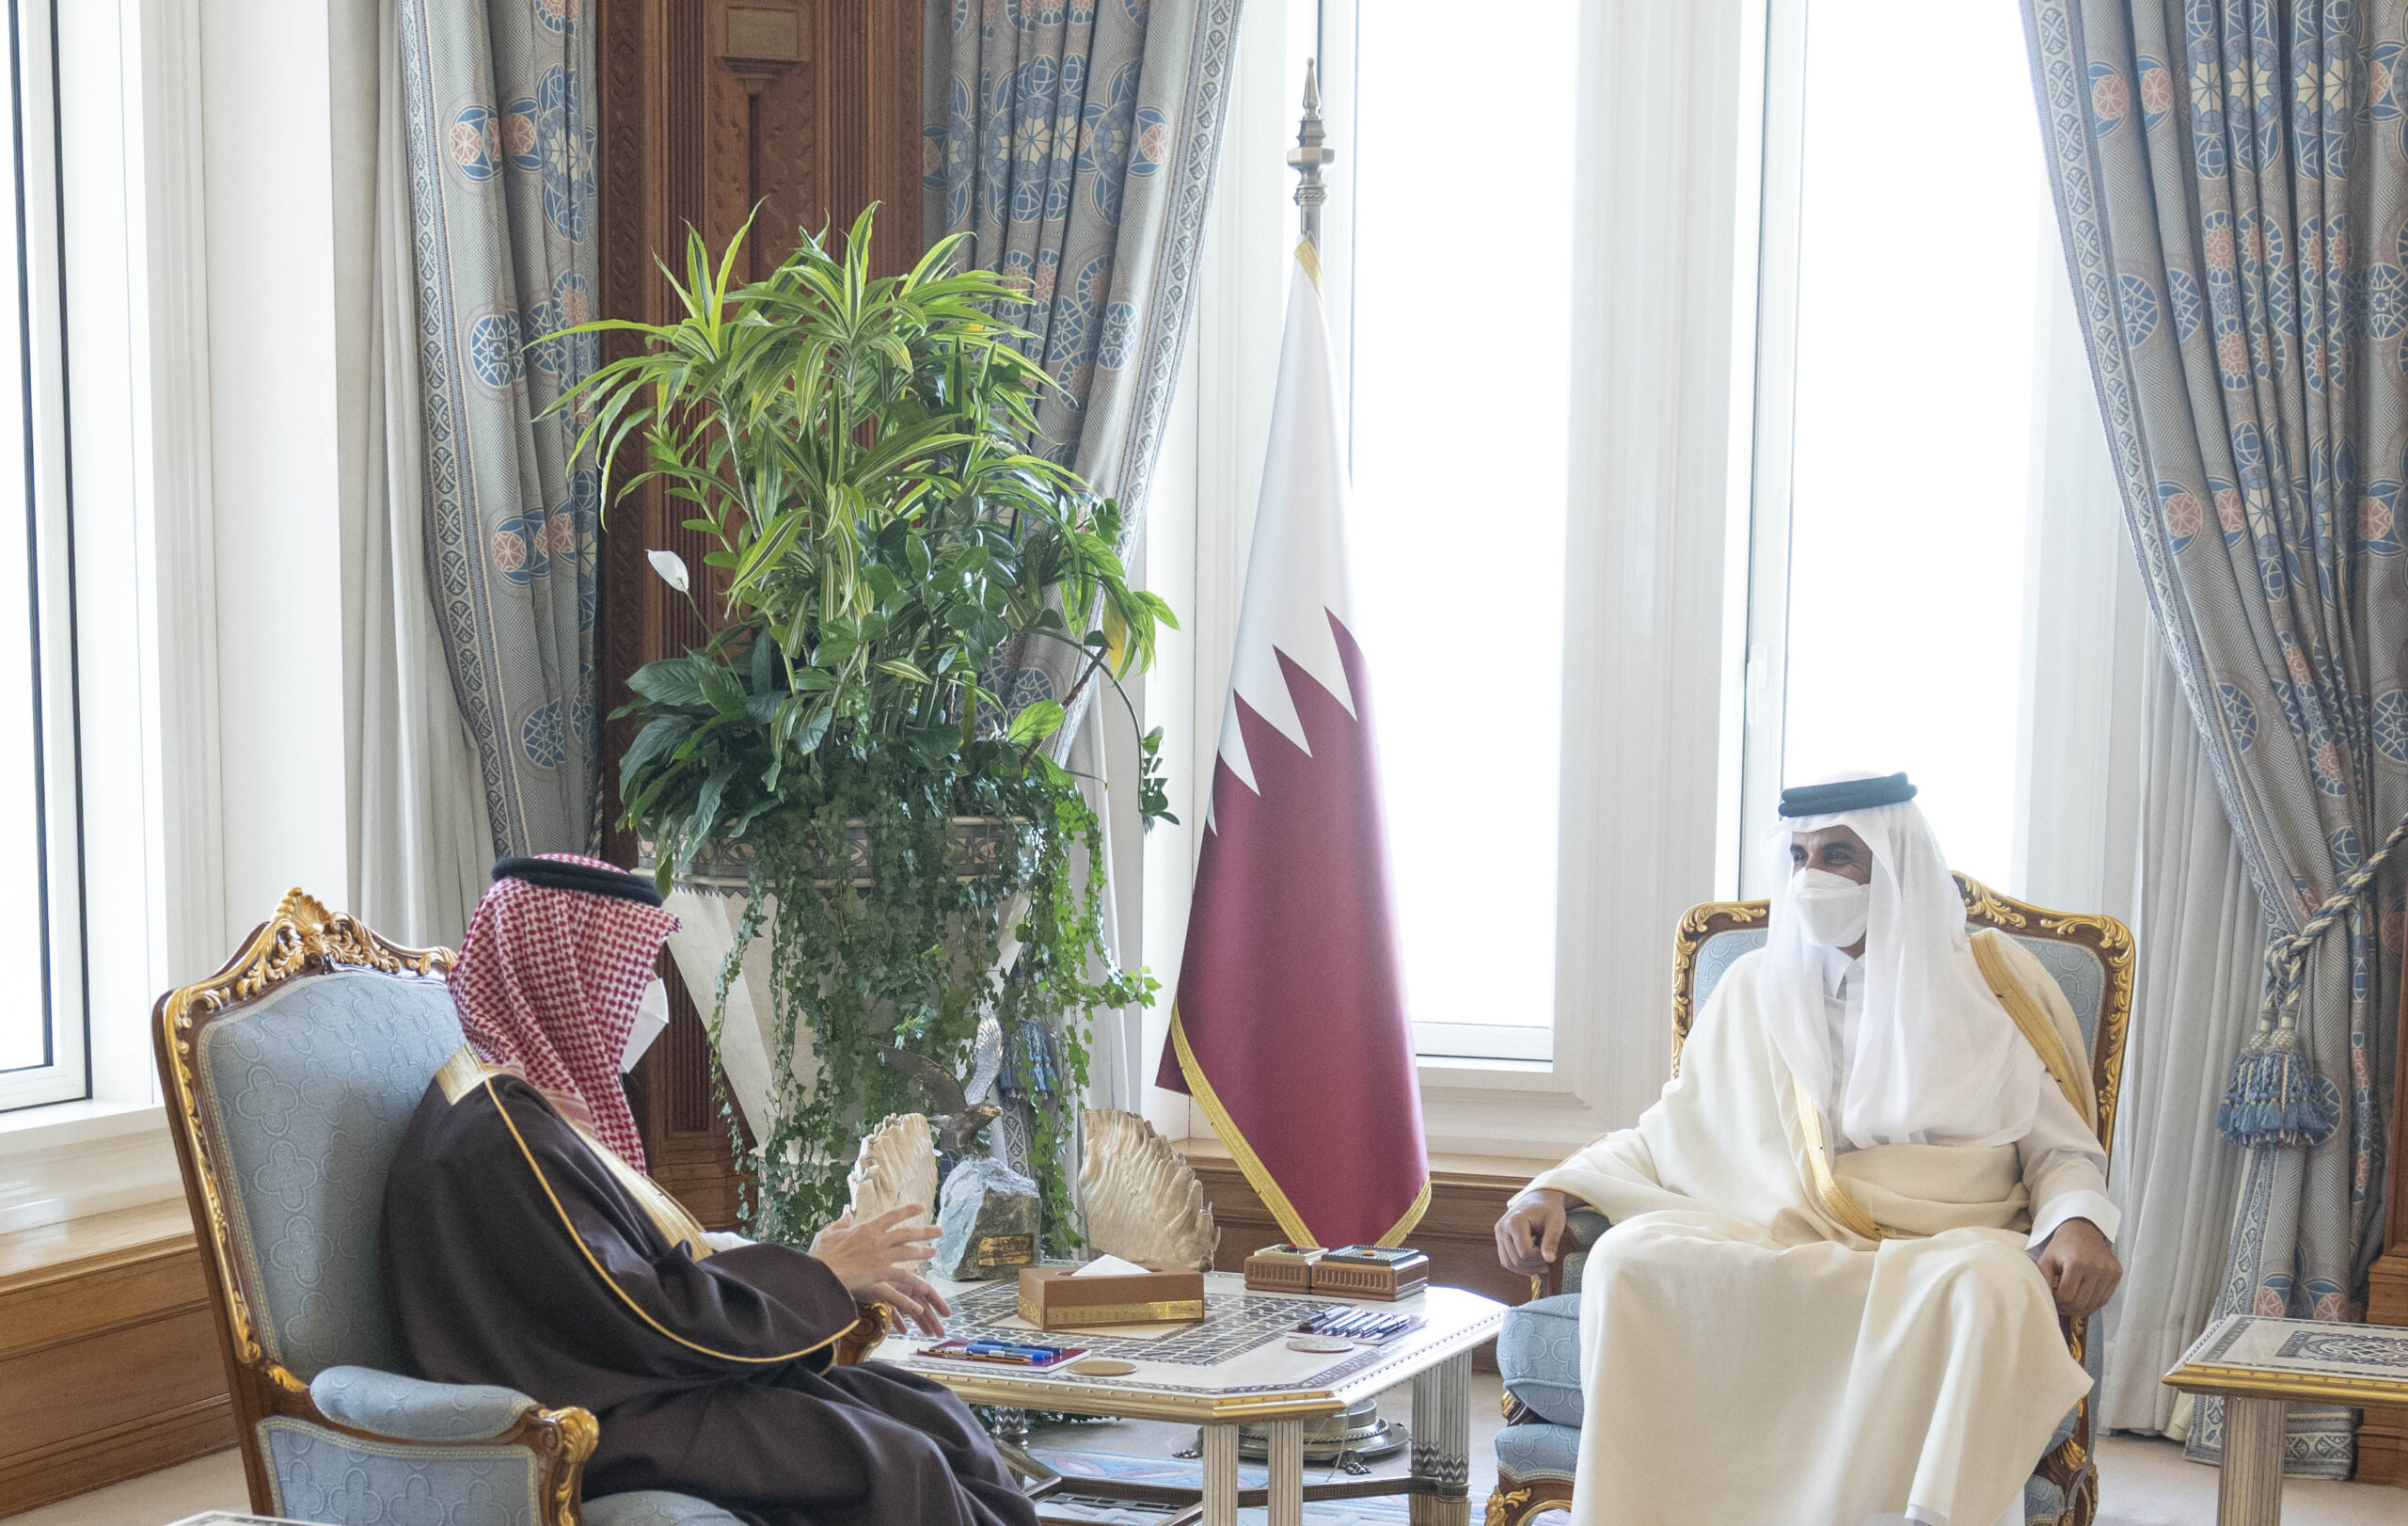 Saudi Arabia's Foreign Minister Conveys Kingdom's Ruler Message to Amir of Qatar and Meets Qatar's Counterpart